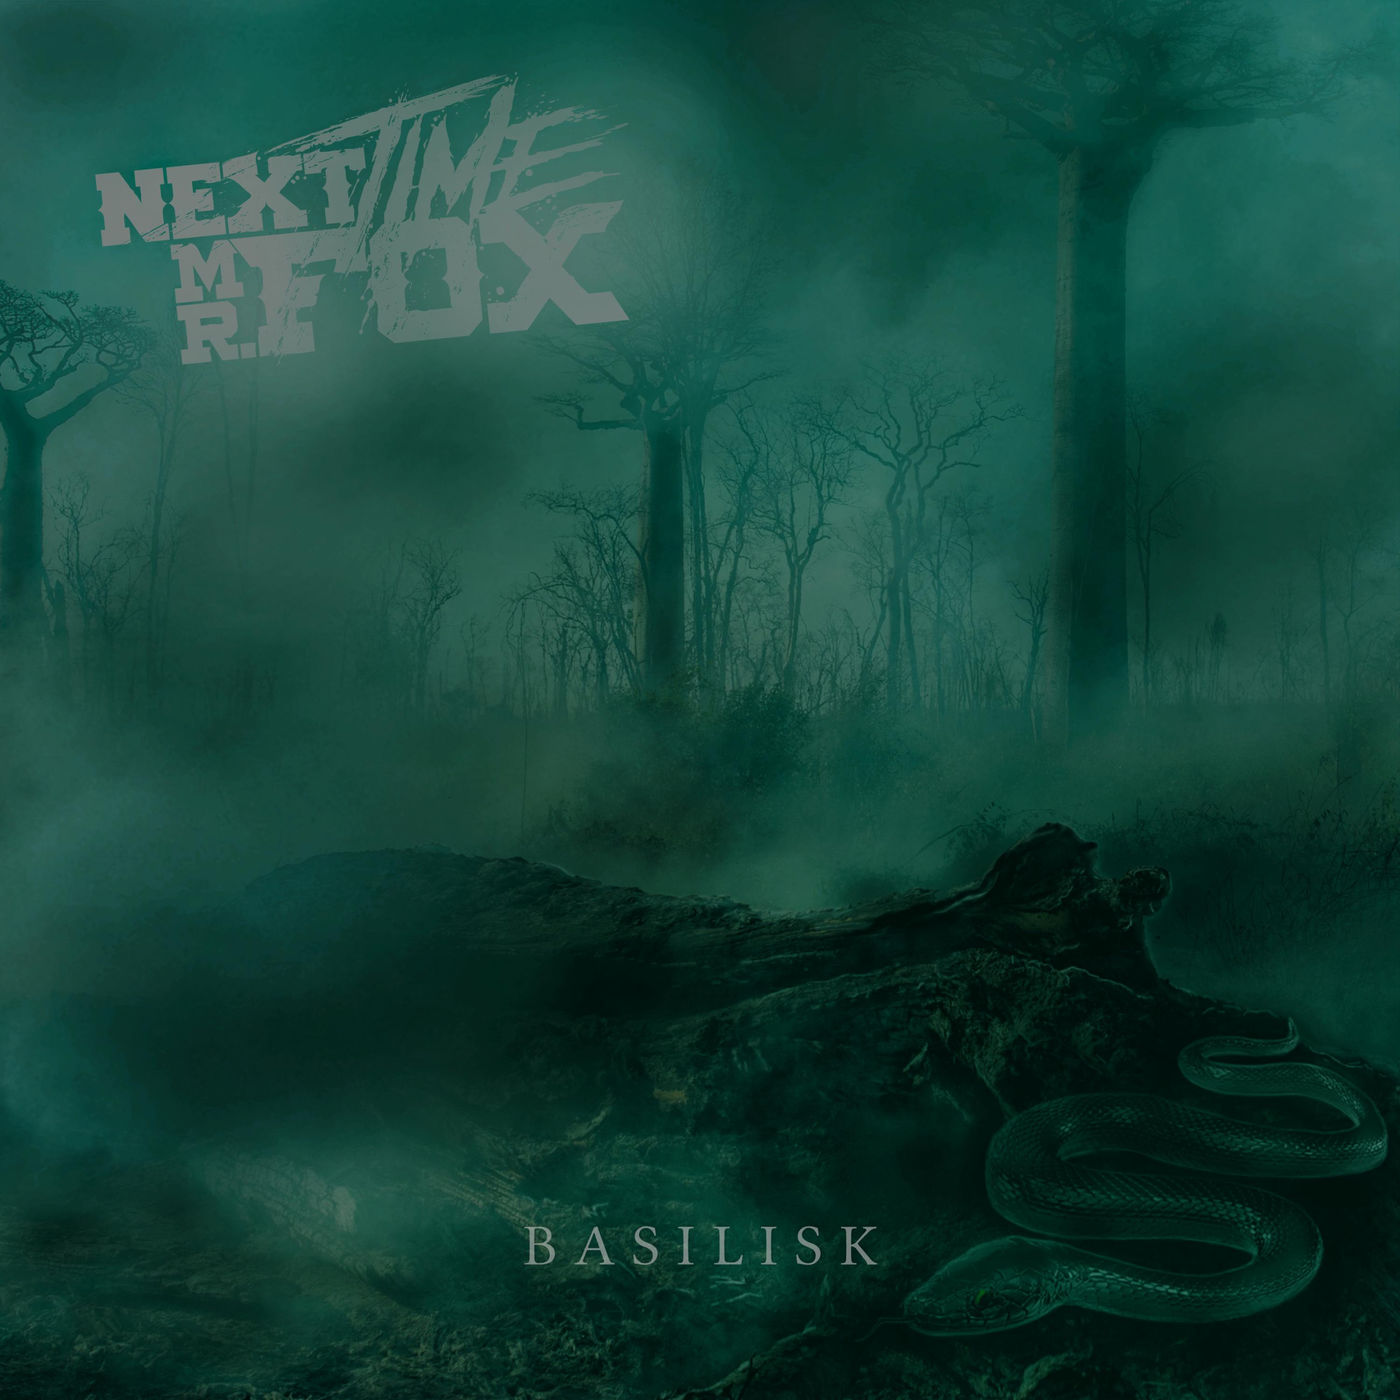 Next Time Mr. Fox - Basilisk [single] (2020)